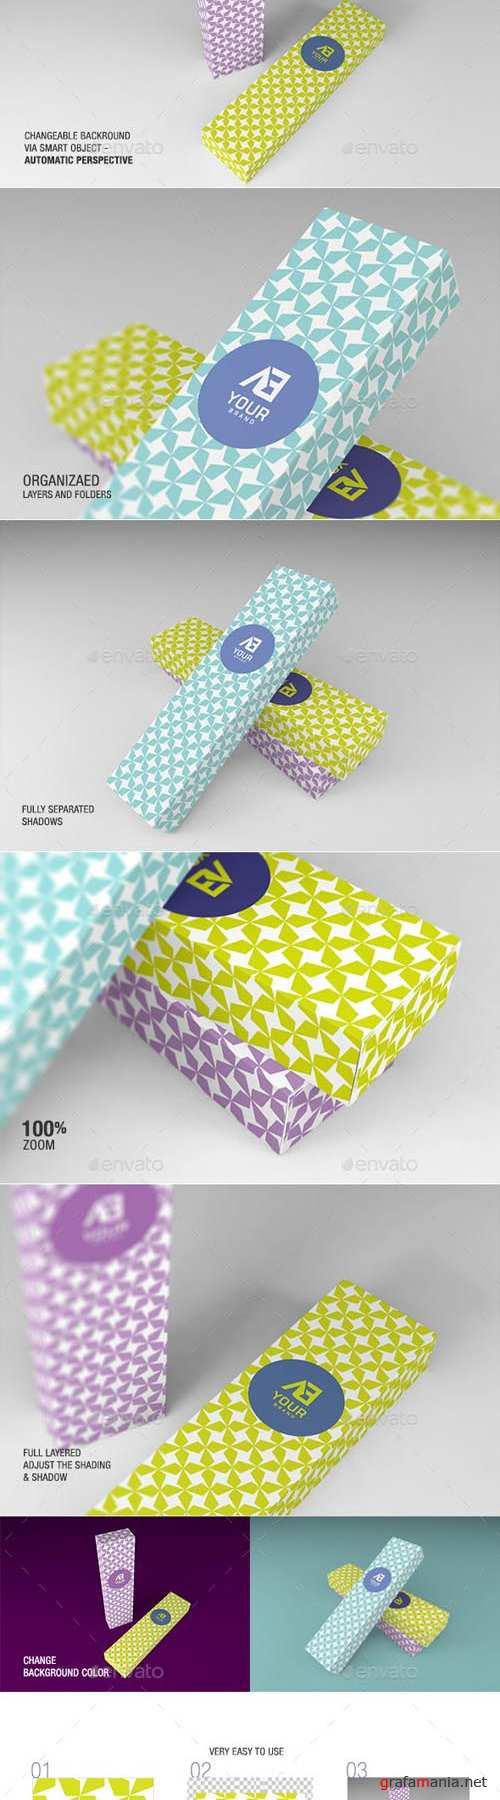 Packaging Mock-ups 53 9893732